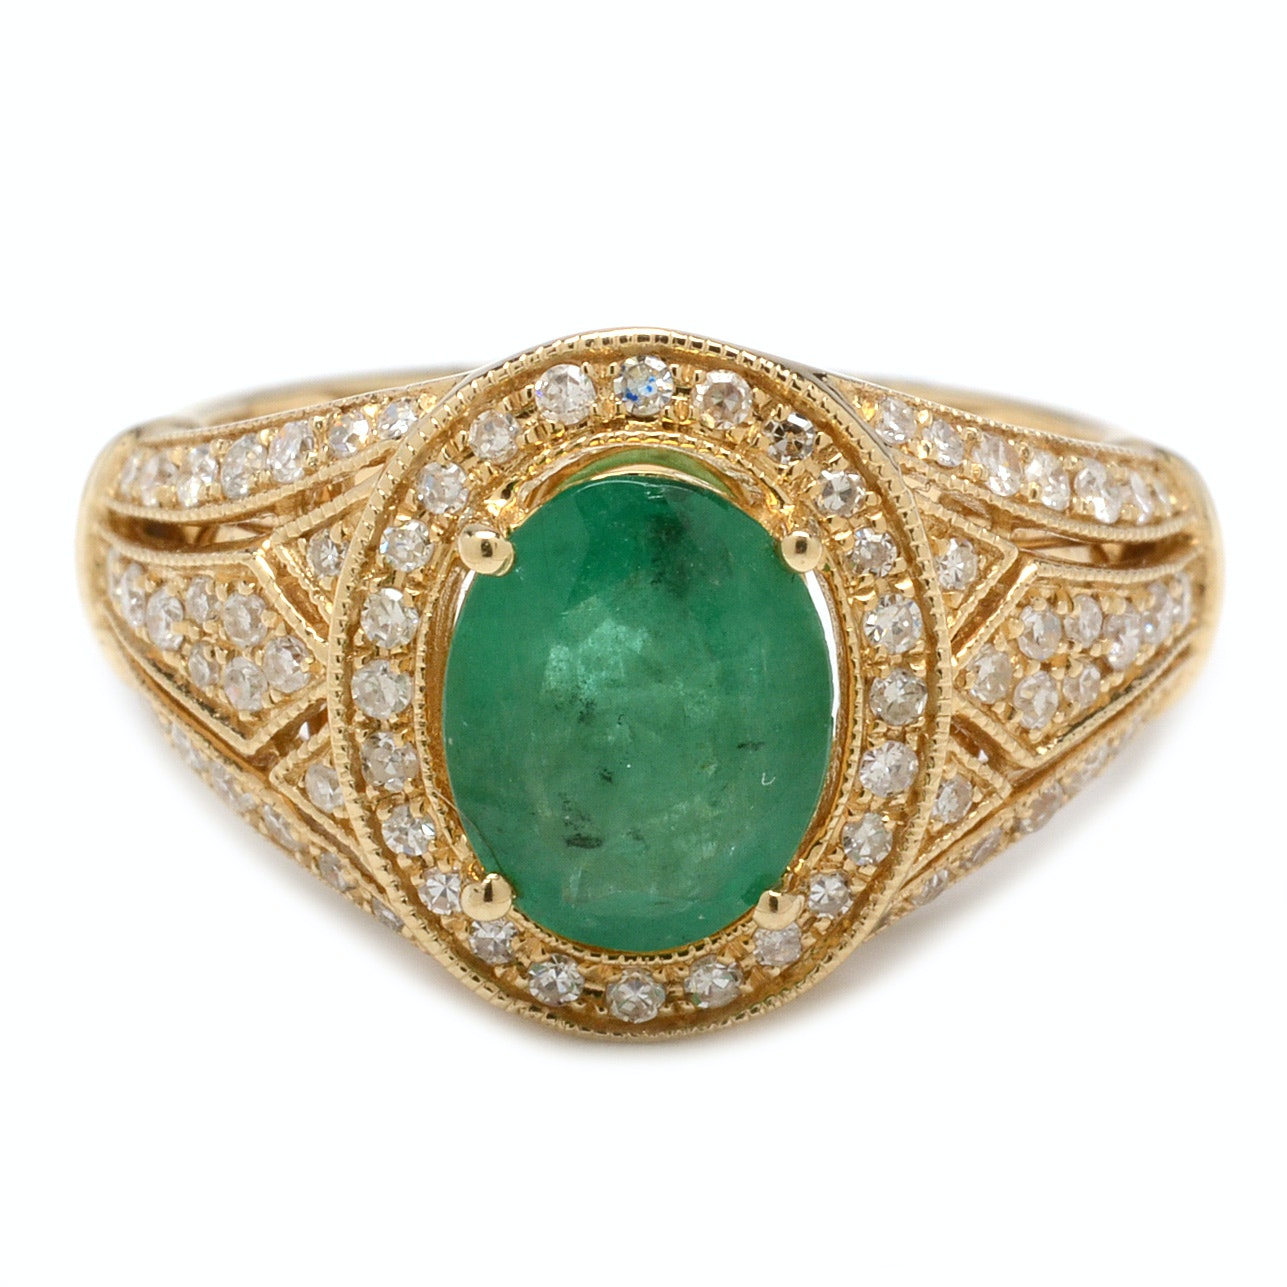 EFFY 14K Yellow Gold 1.21 CT Emerald and Diamond Halo Ring